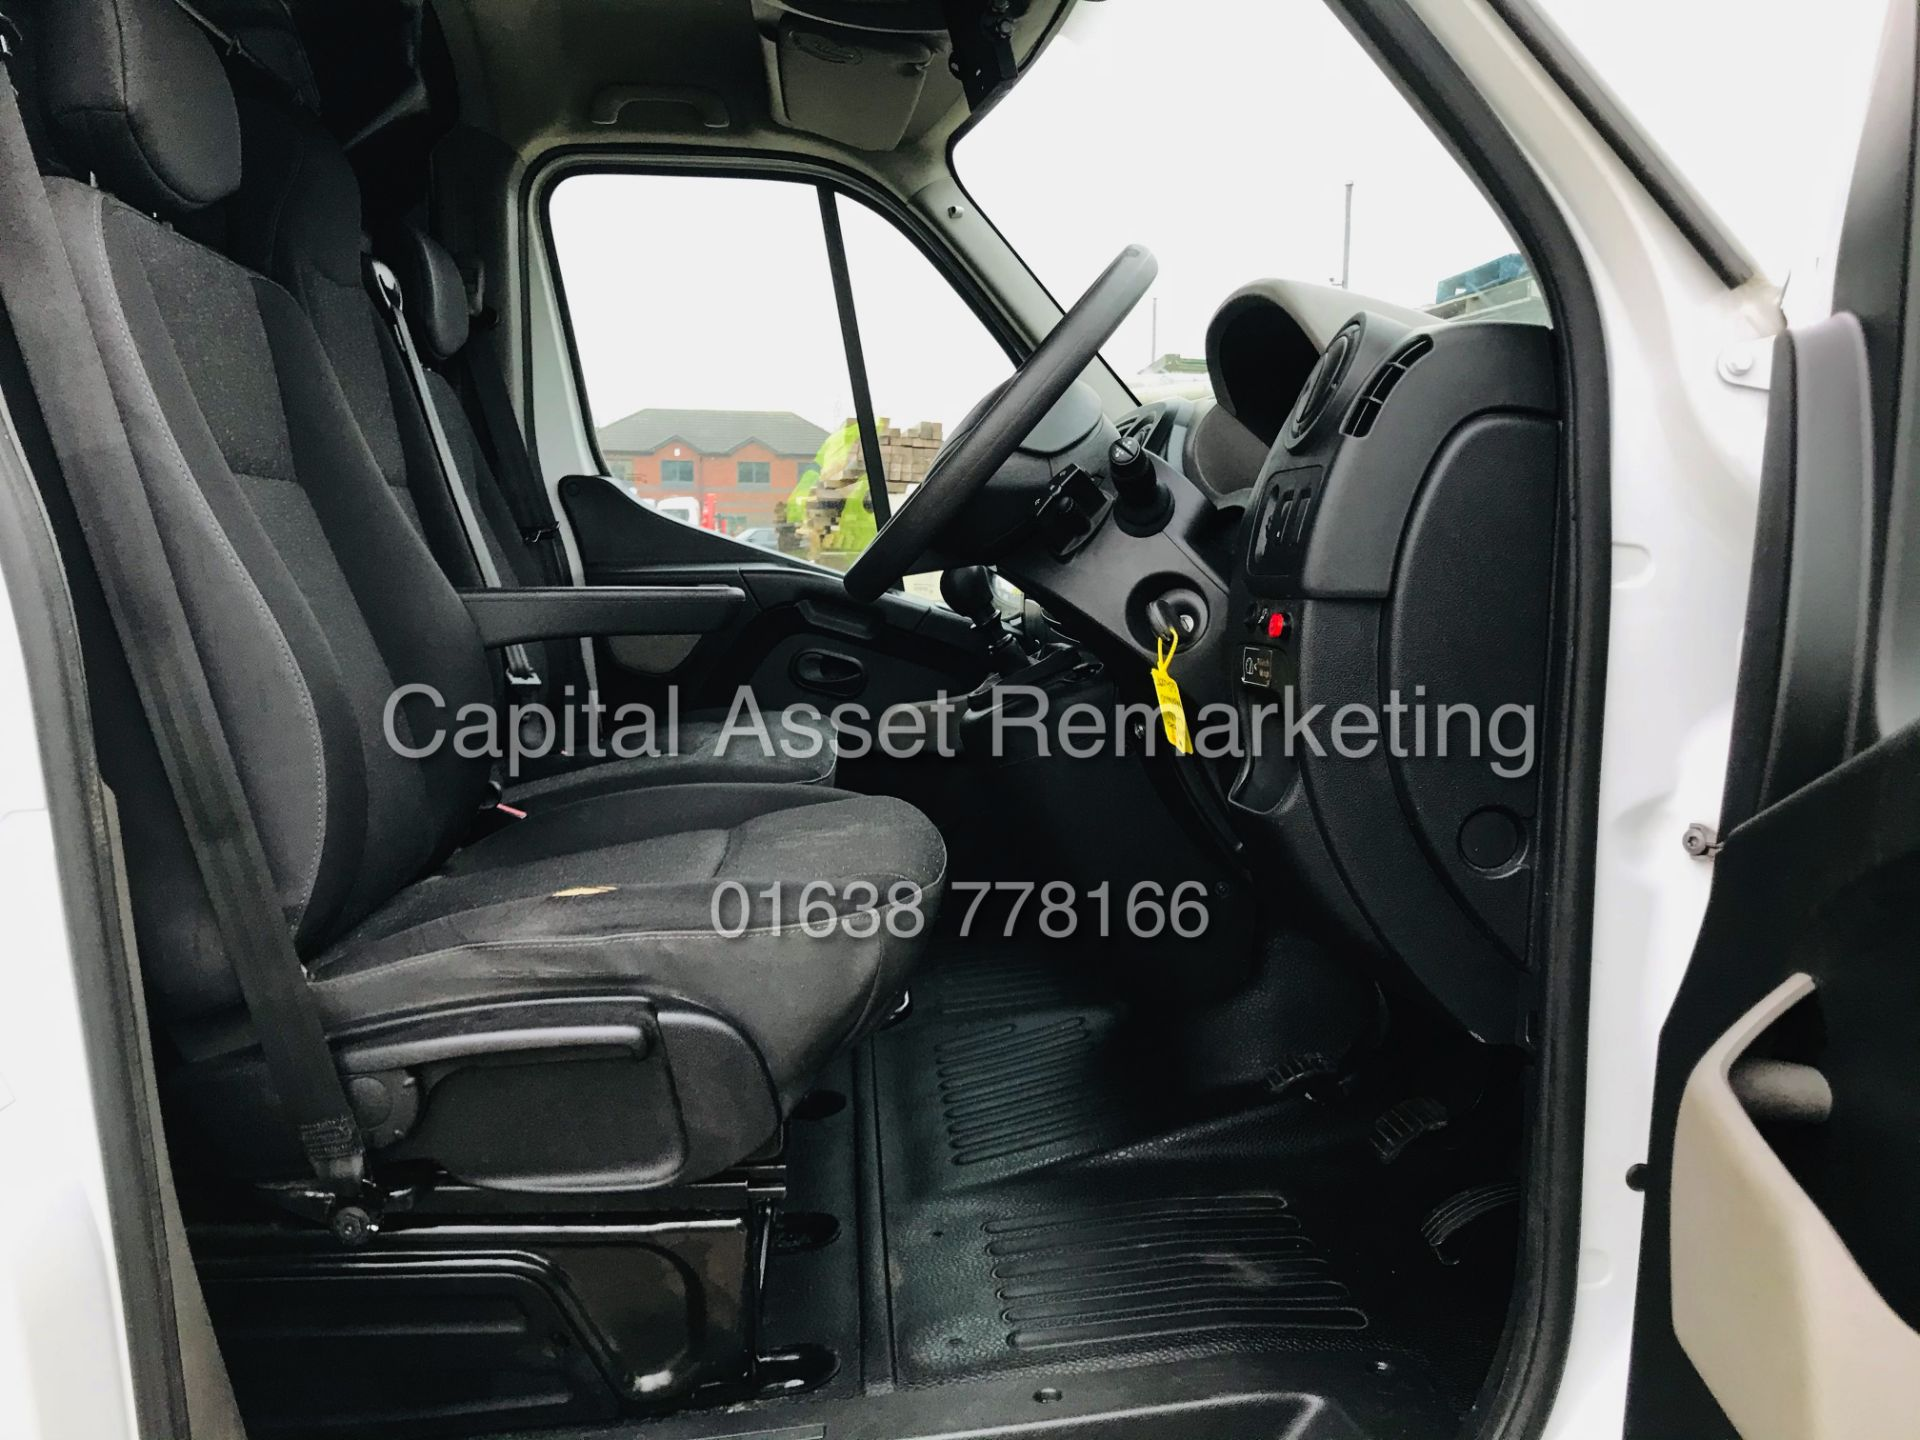 (ON SALE) VAUXHALL MOVANO 2.3 CDTI F3300 (2017 MODEL) FSH *EURO 6* FITTED TAIL LIFT-ELEC PACK *RARE* - Image 11 of 21